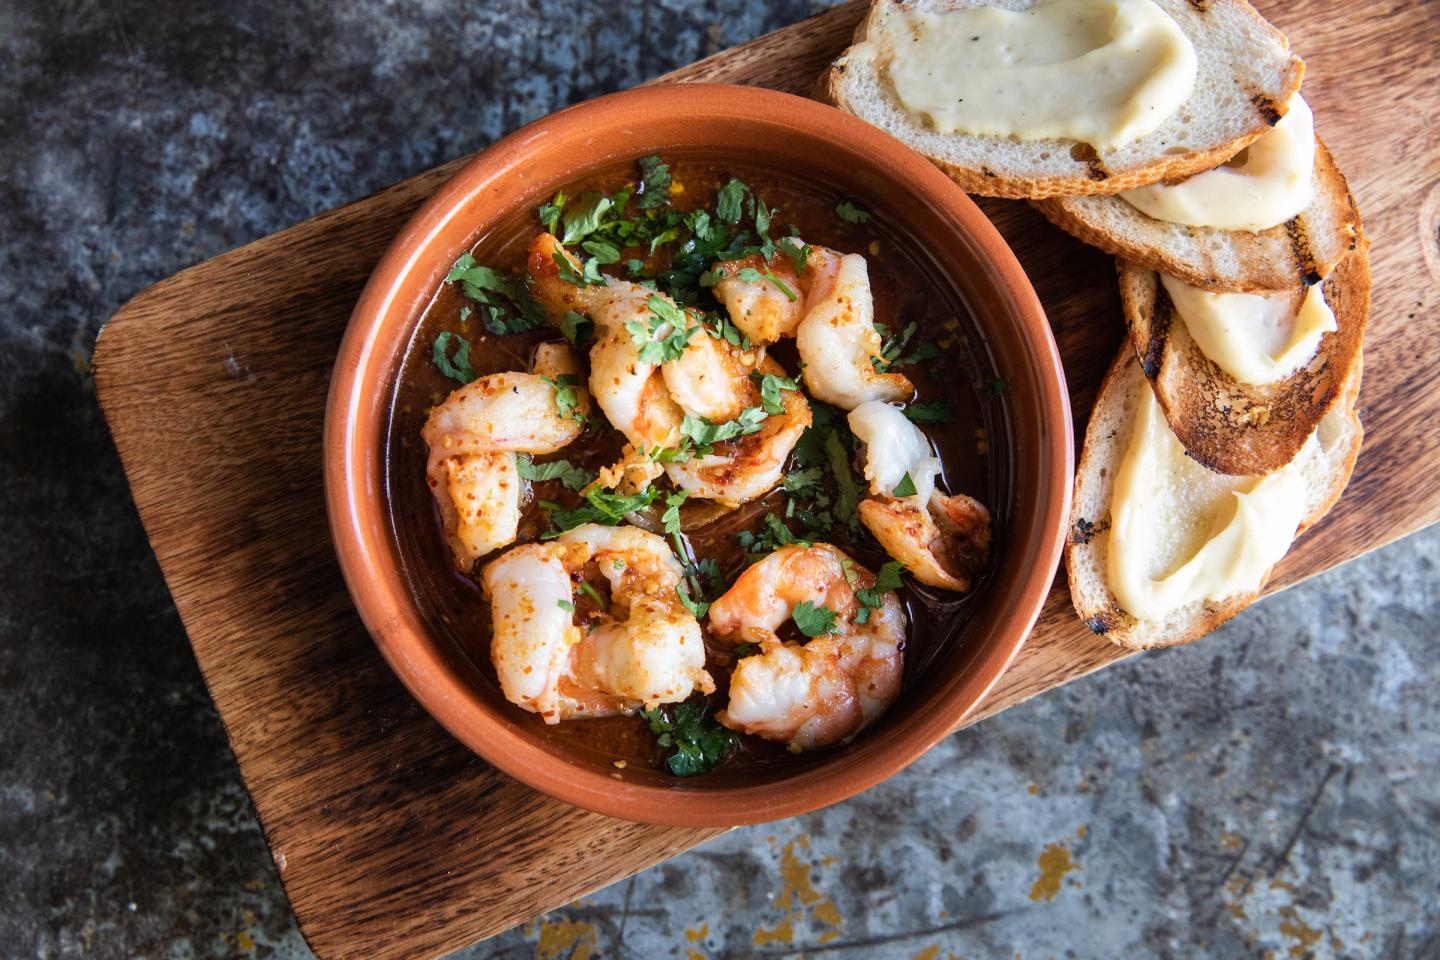 Garlic Shrimp with bread at Nacional 27